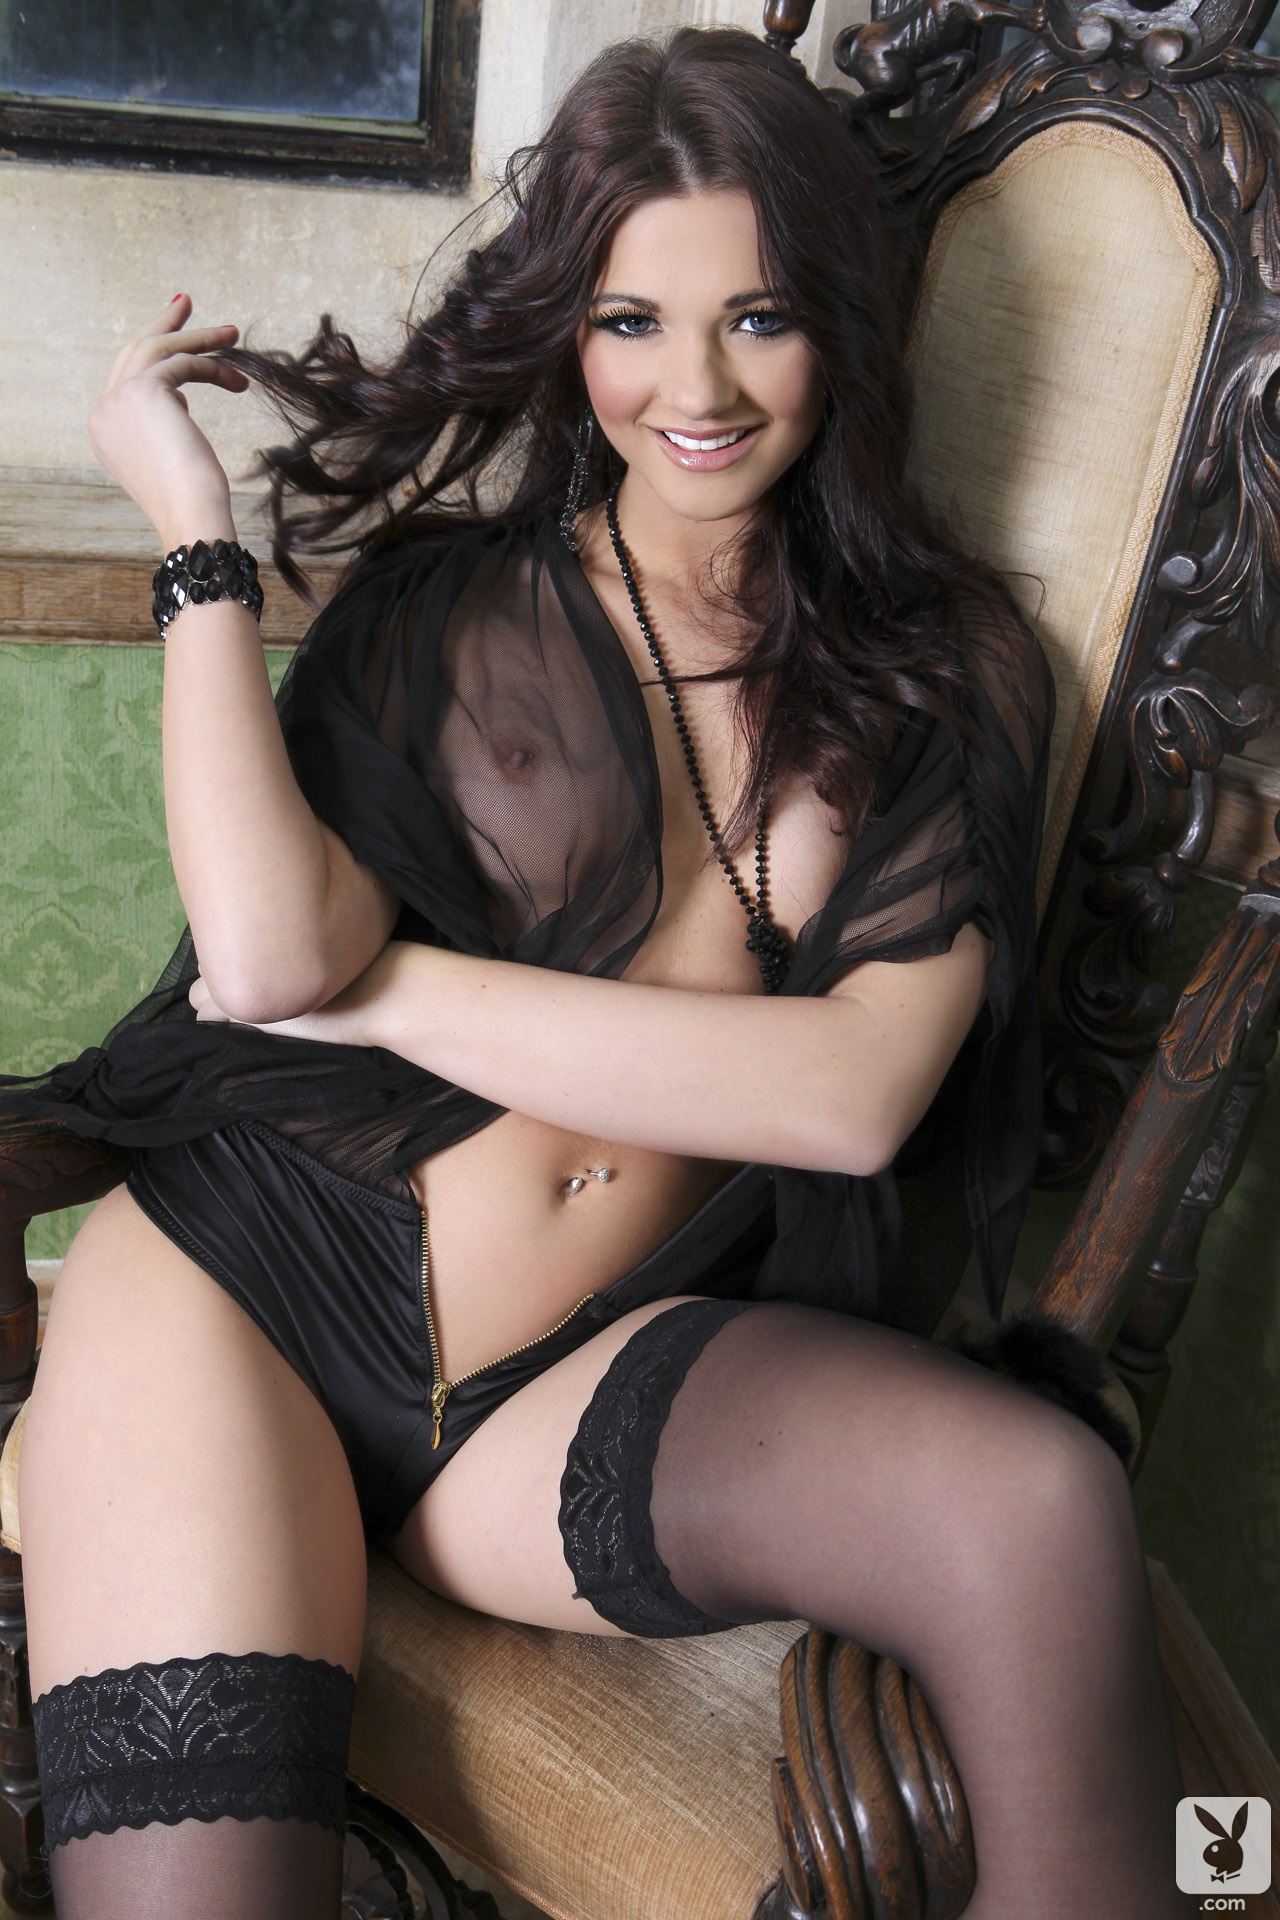 nickie-ann-stockings-playboy-07